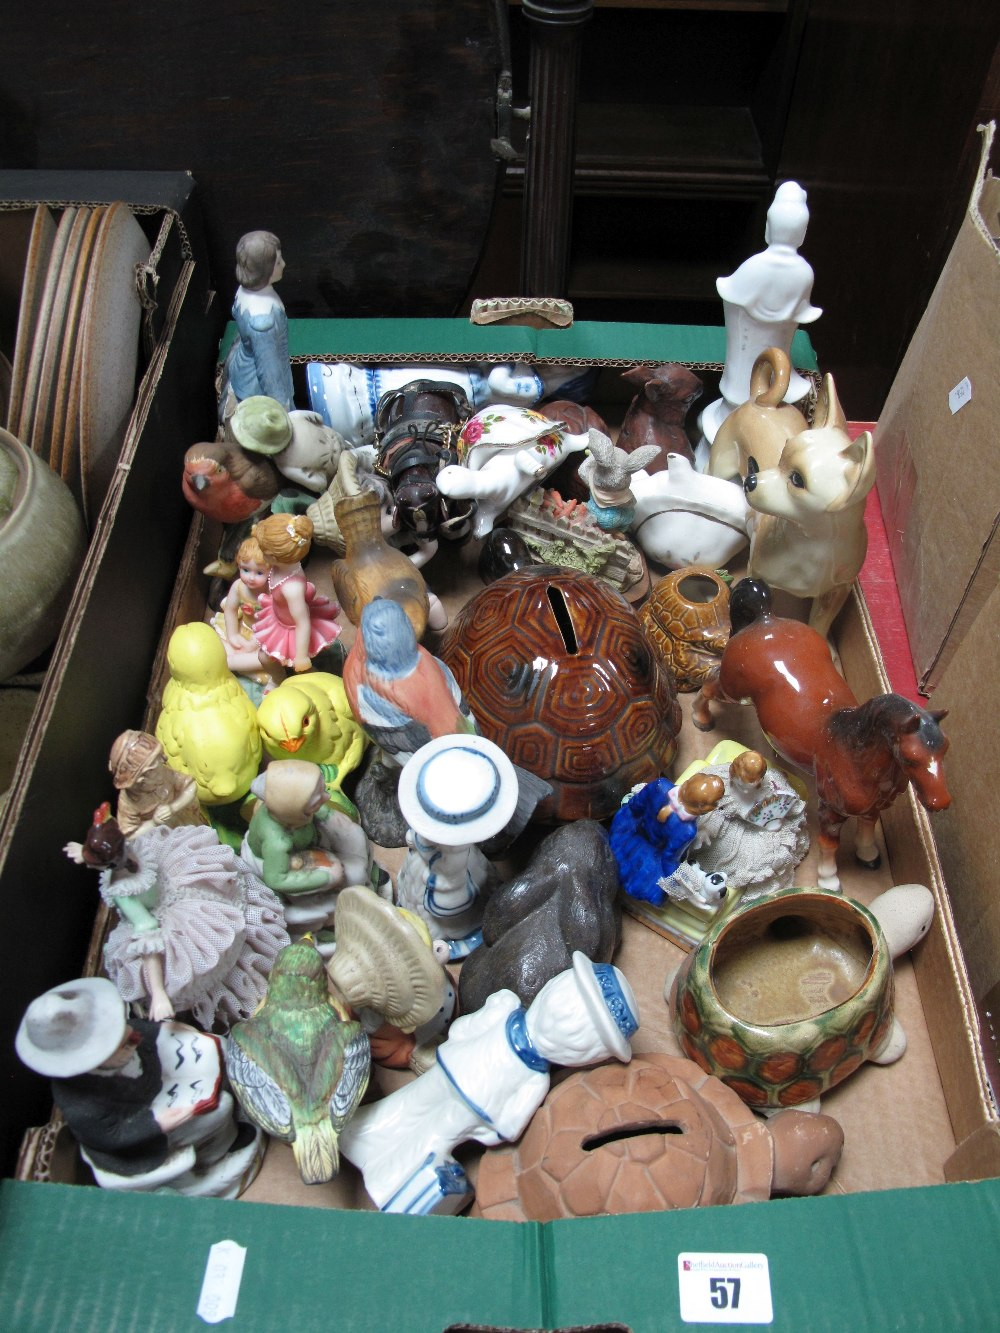 Lot 57 - A Coopercraft Dog, other animals, figures:- One Box